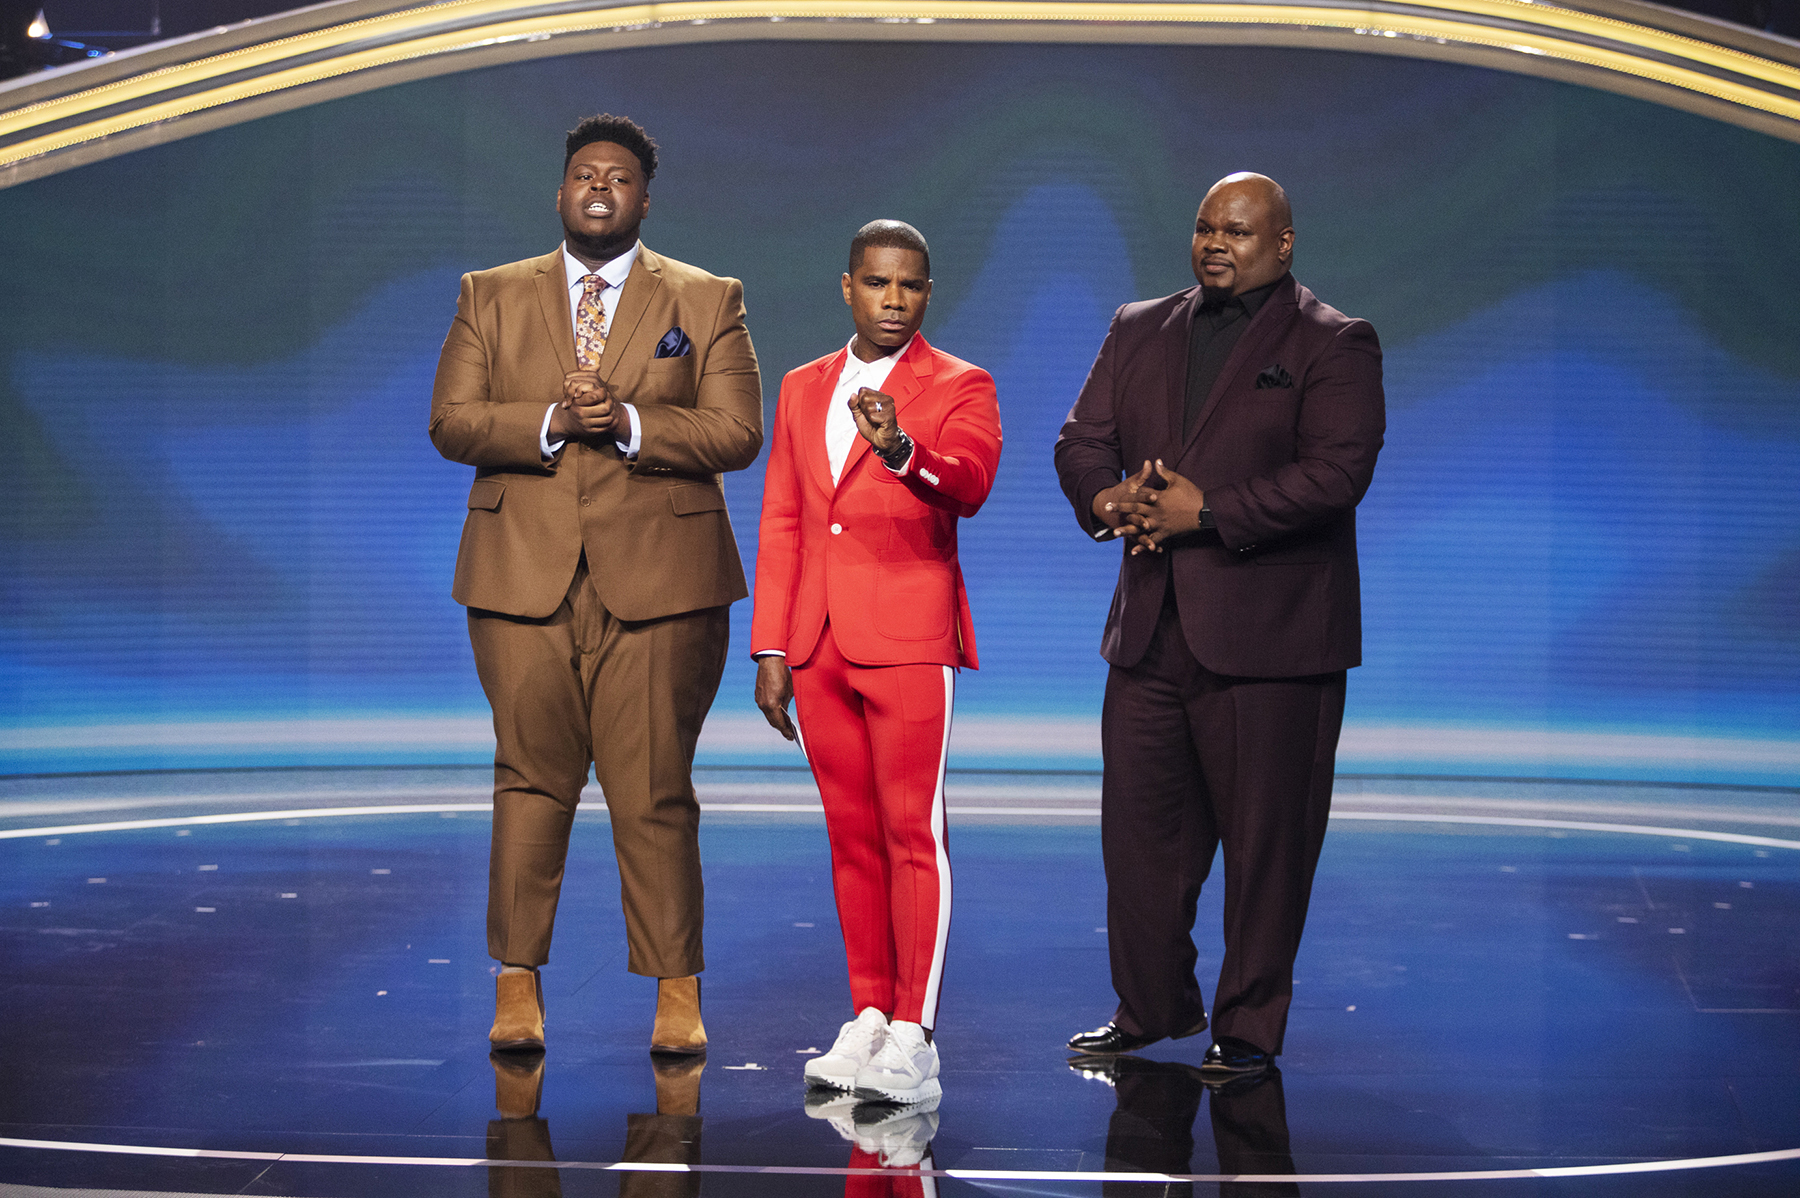 Finalists Announced for BET's Sunday Best – Joshua Copeland & Melvin Crispell, III + Tasha Cobbs Leonard, VaShawn Mitchell & More Perform on S9 Finale